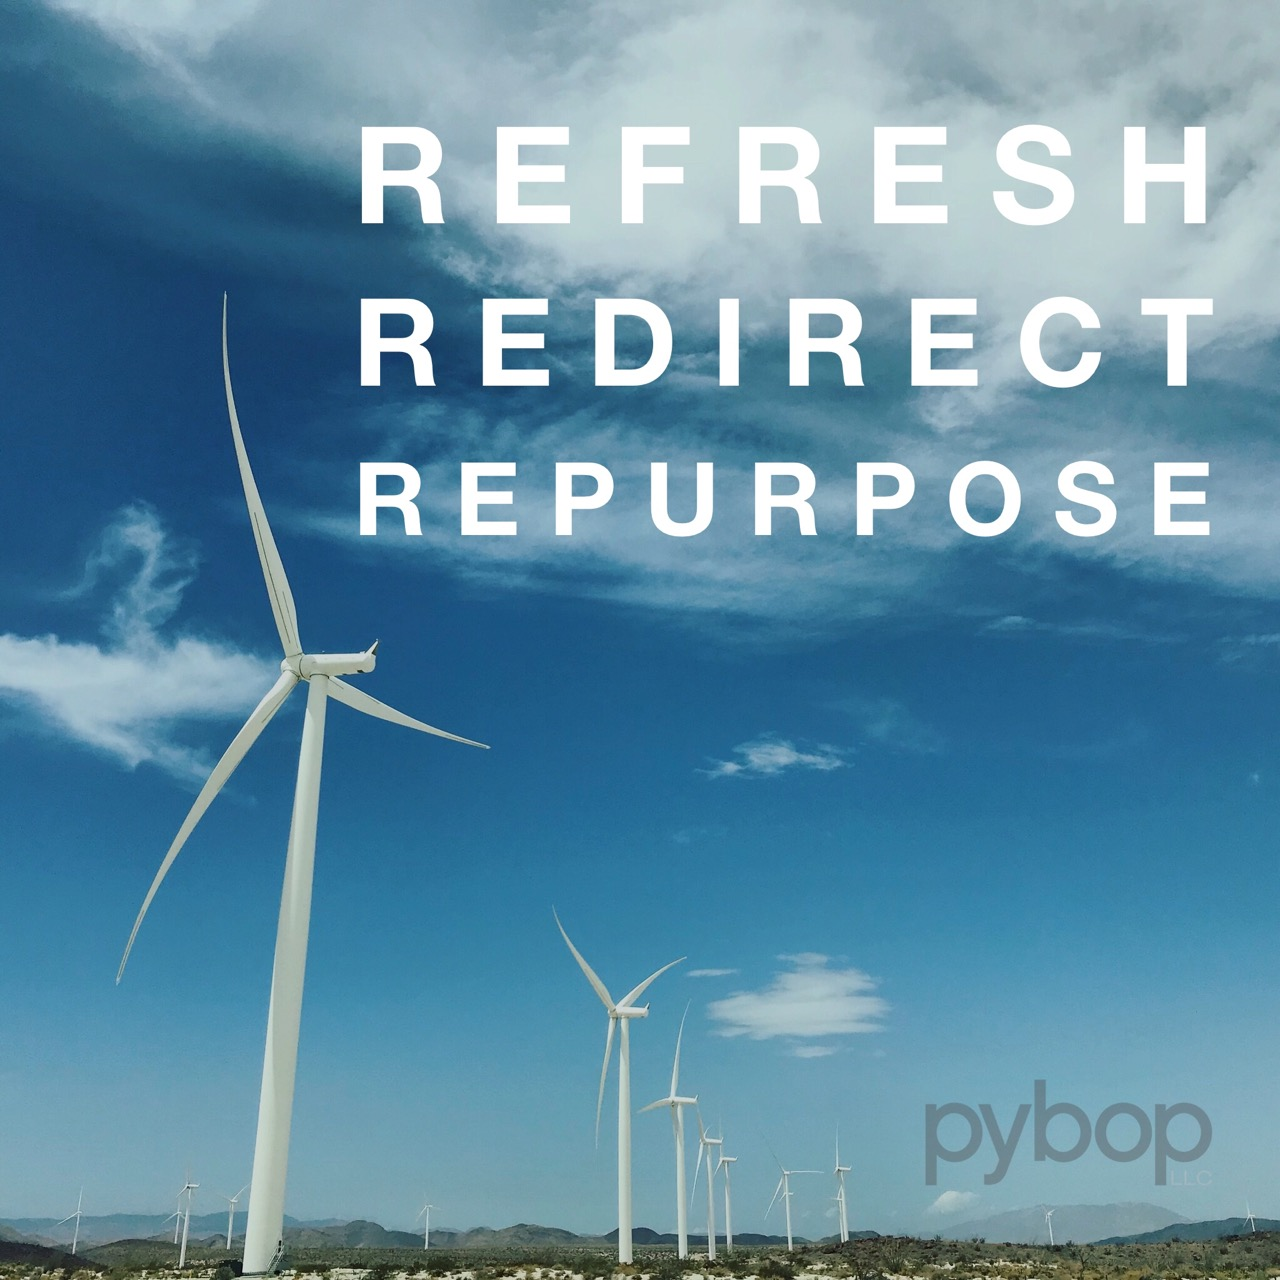 What's the best way to repurpose content?